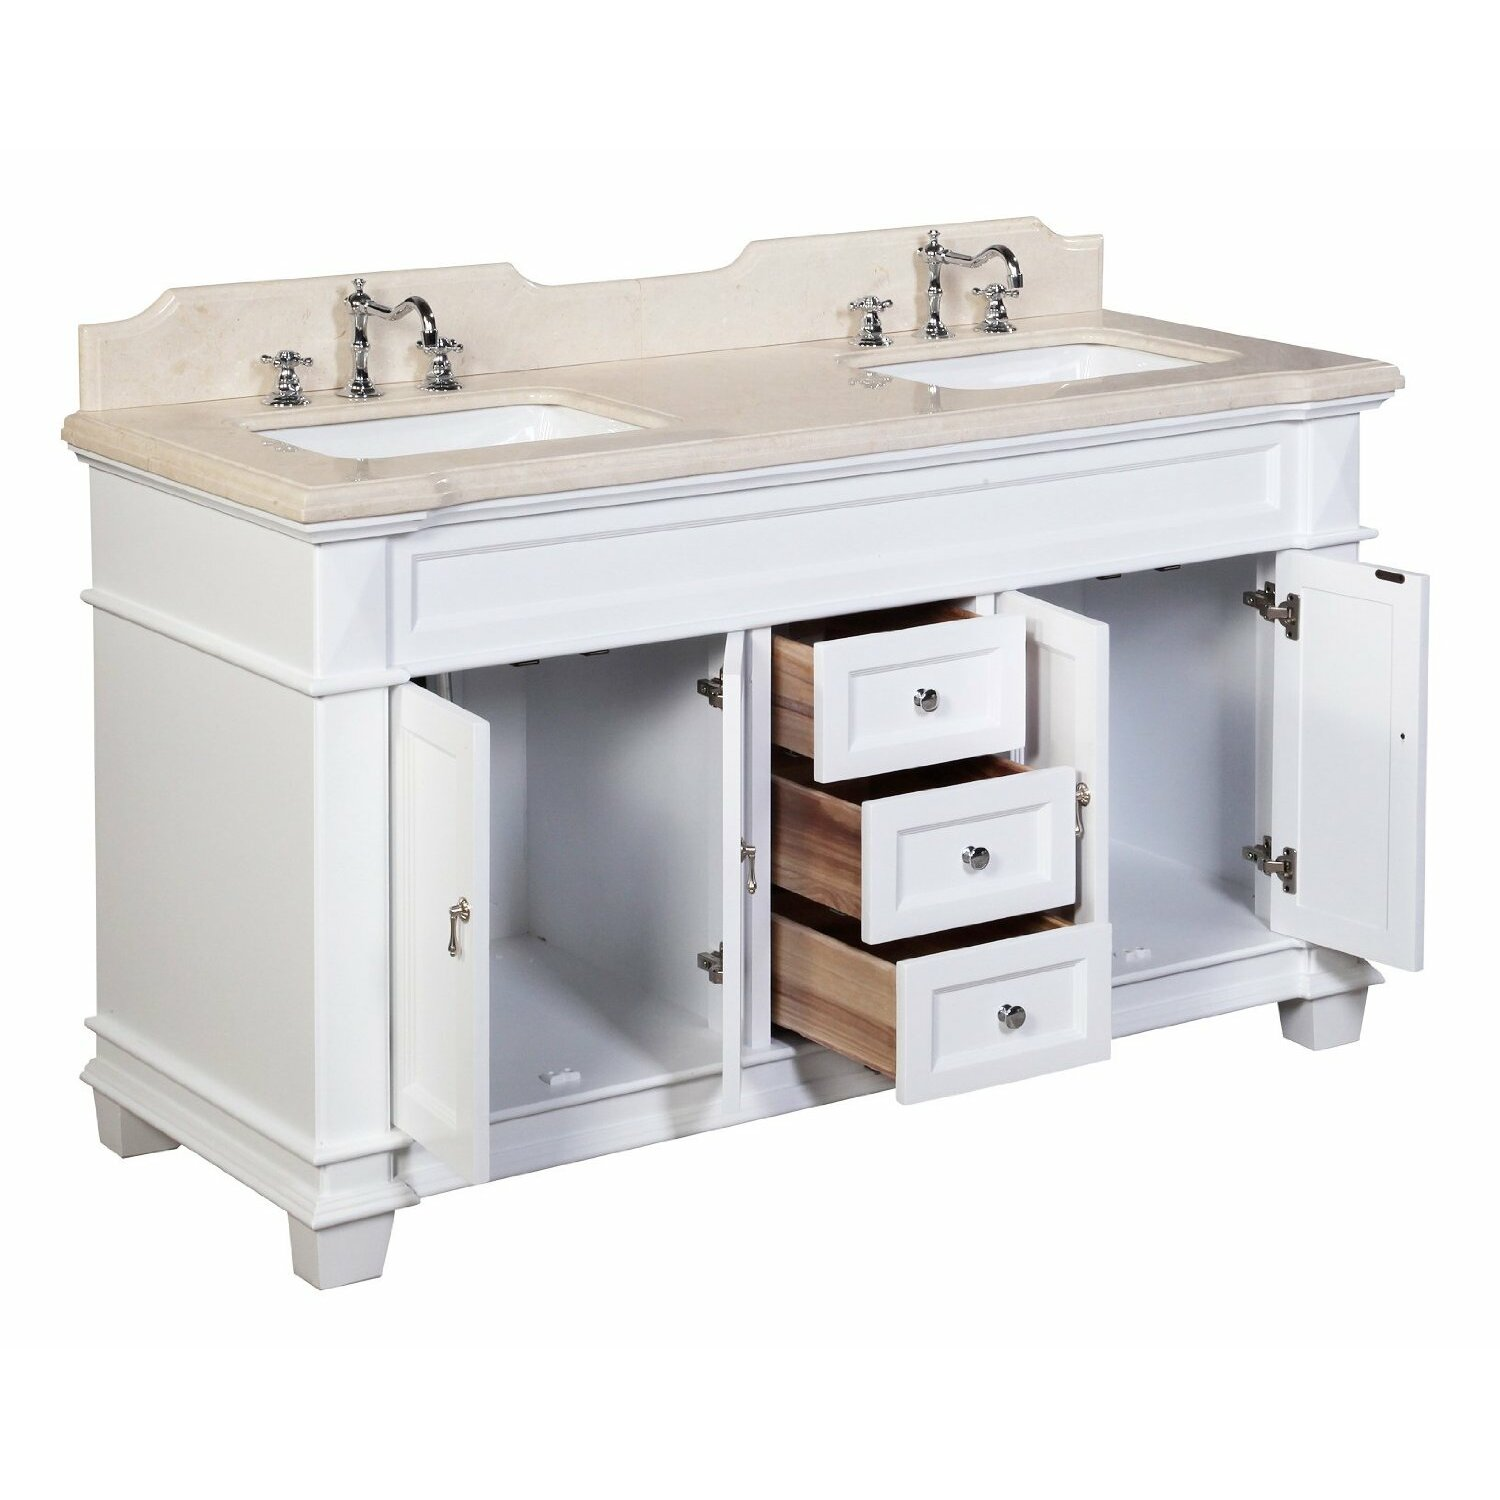 Kbc elizabeth 60 double bathroom vanity set reviews wayfair Bathroom sink and vanity sets